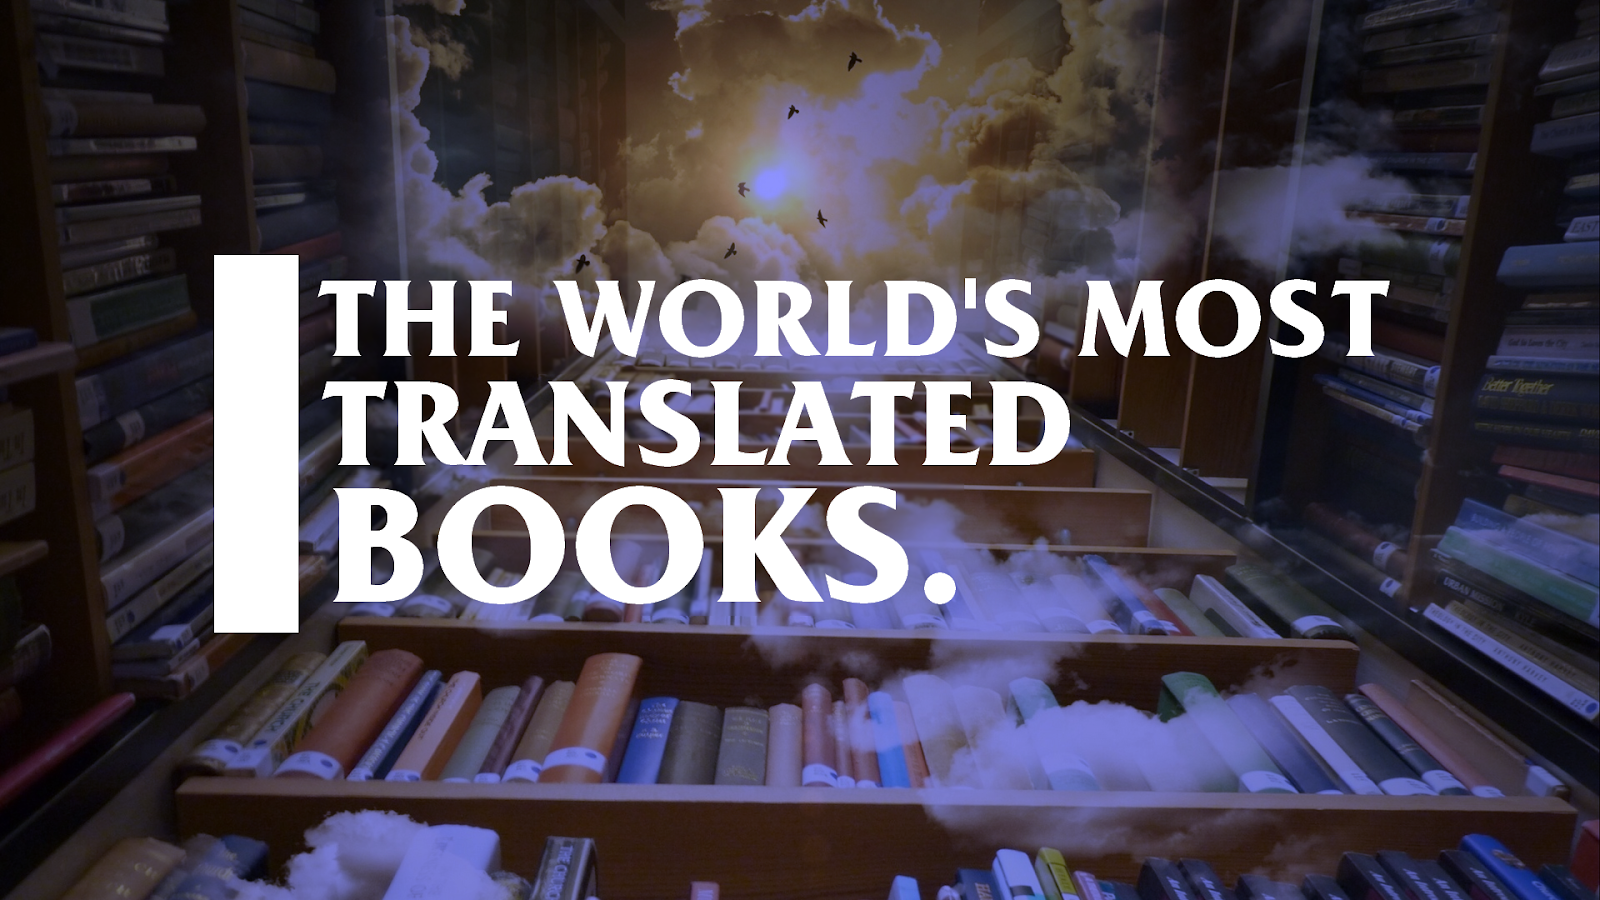 50 Of The World's Most Translated Books.